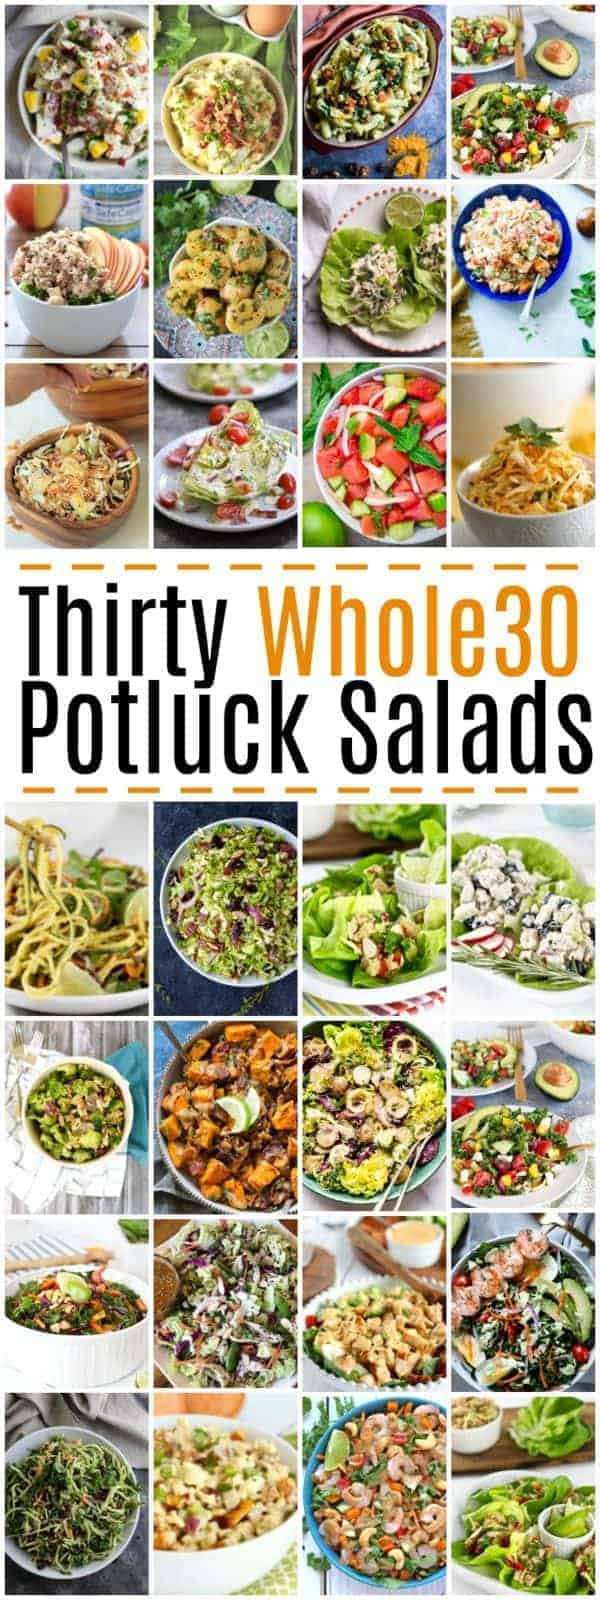 Need a Whole30-friendly dish to pass at your next party? Here's 30 Whole30 Potluck Salads to keep you well fed and on track this summer. | The Real Food Dietitians | https://therealfoodrds.com/30-whole30-potluck-salads/